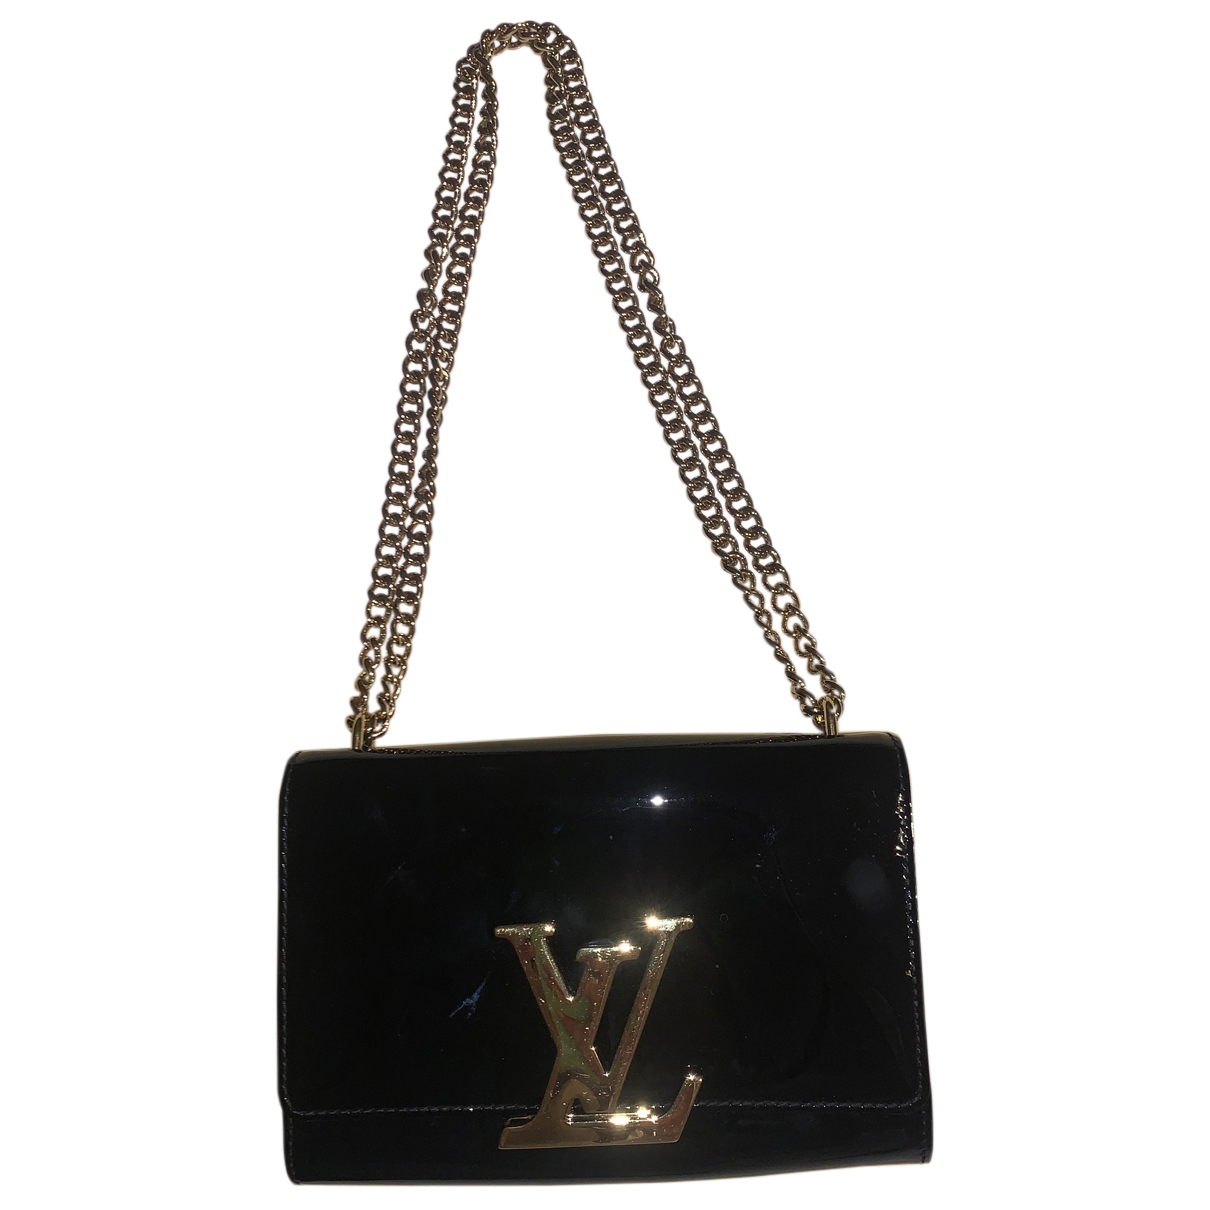 Louis Vuitton Louise Black Patent leather handbag for Women \N